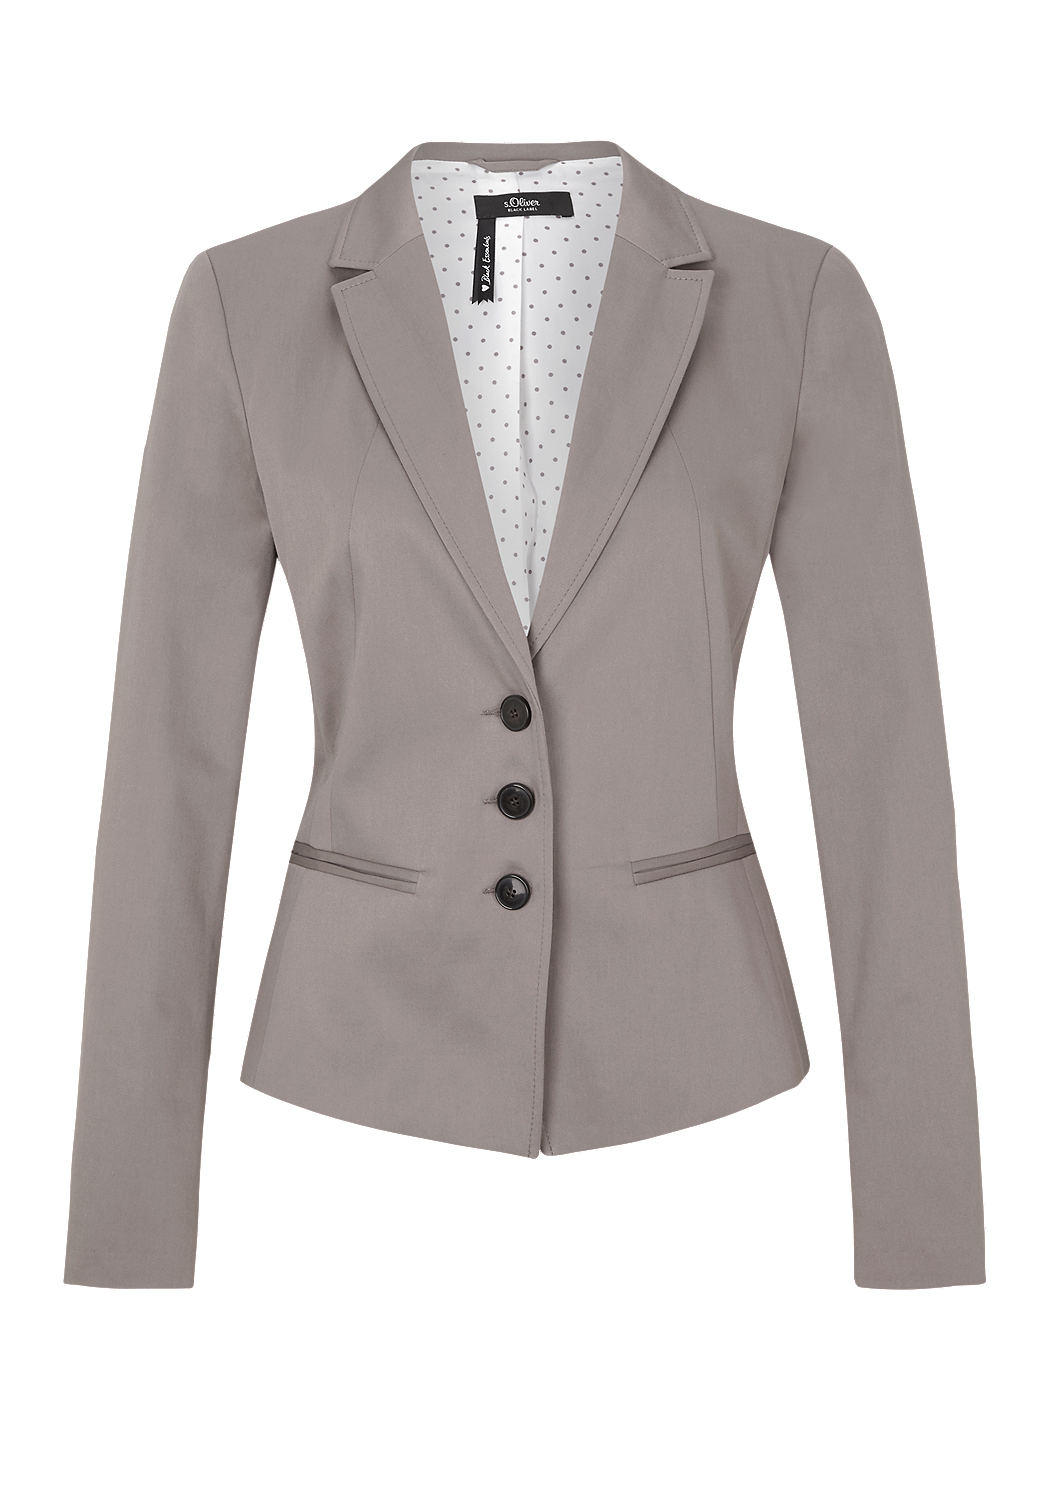 Shop for linen blazers, formal and casual suit, slim fit blazers online, including black blazers, white blazers, red blazers and all kinds of amazing men's blazers at best price from lidarwindtechnolog.ga